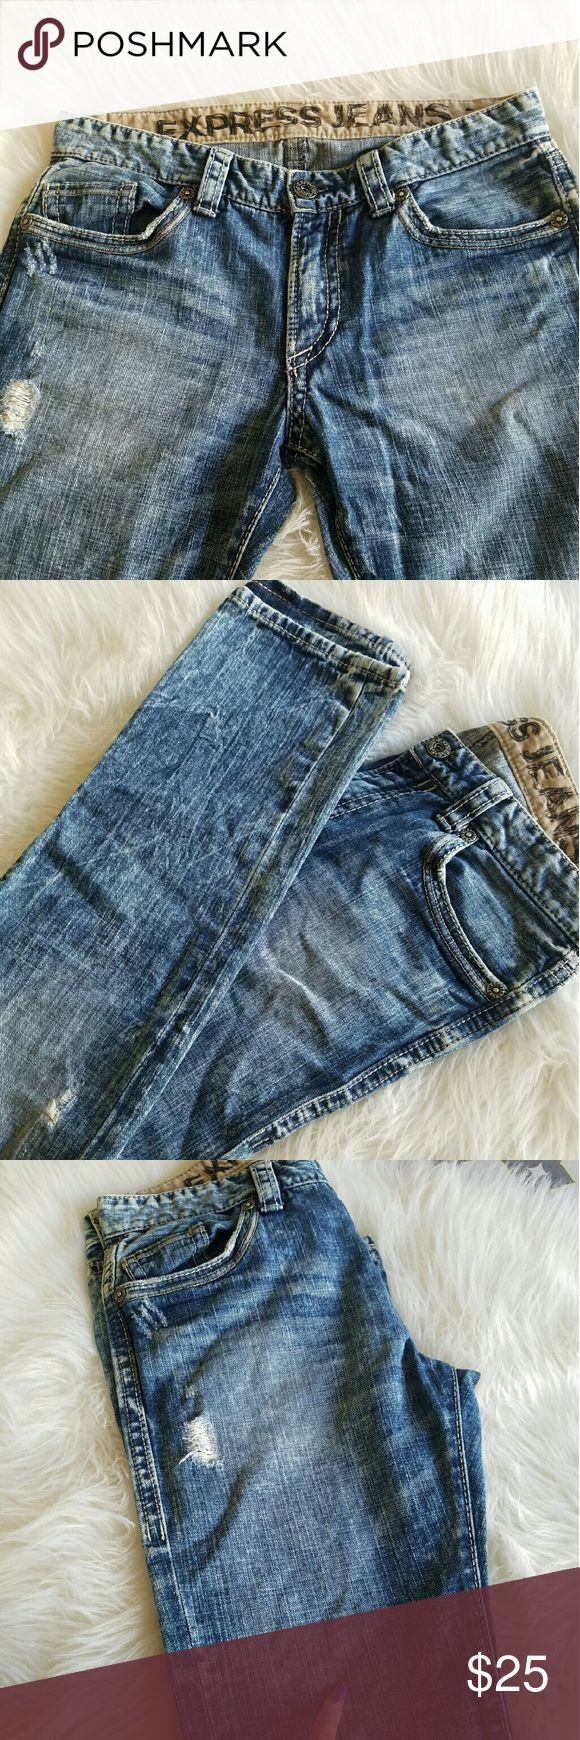 👖Express distressed wash Jeans👖 They have arrived.   Men express jeans  In good condition Single flaw noted and pointed out on 3rd pic.  Light Blue with light white wash   Size 32X30 Express Jeans Straight